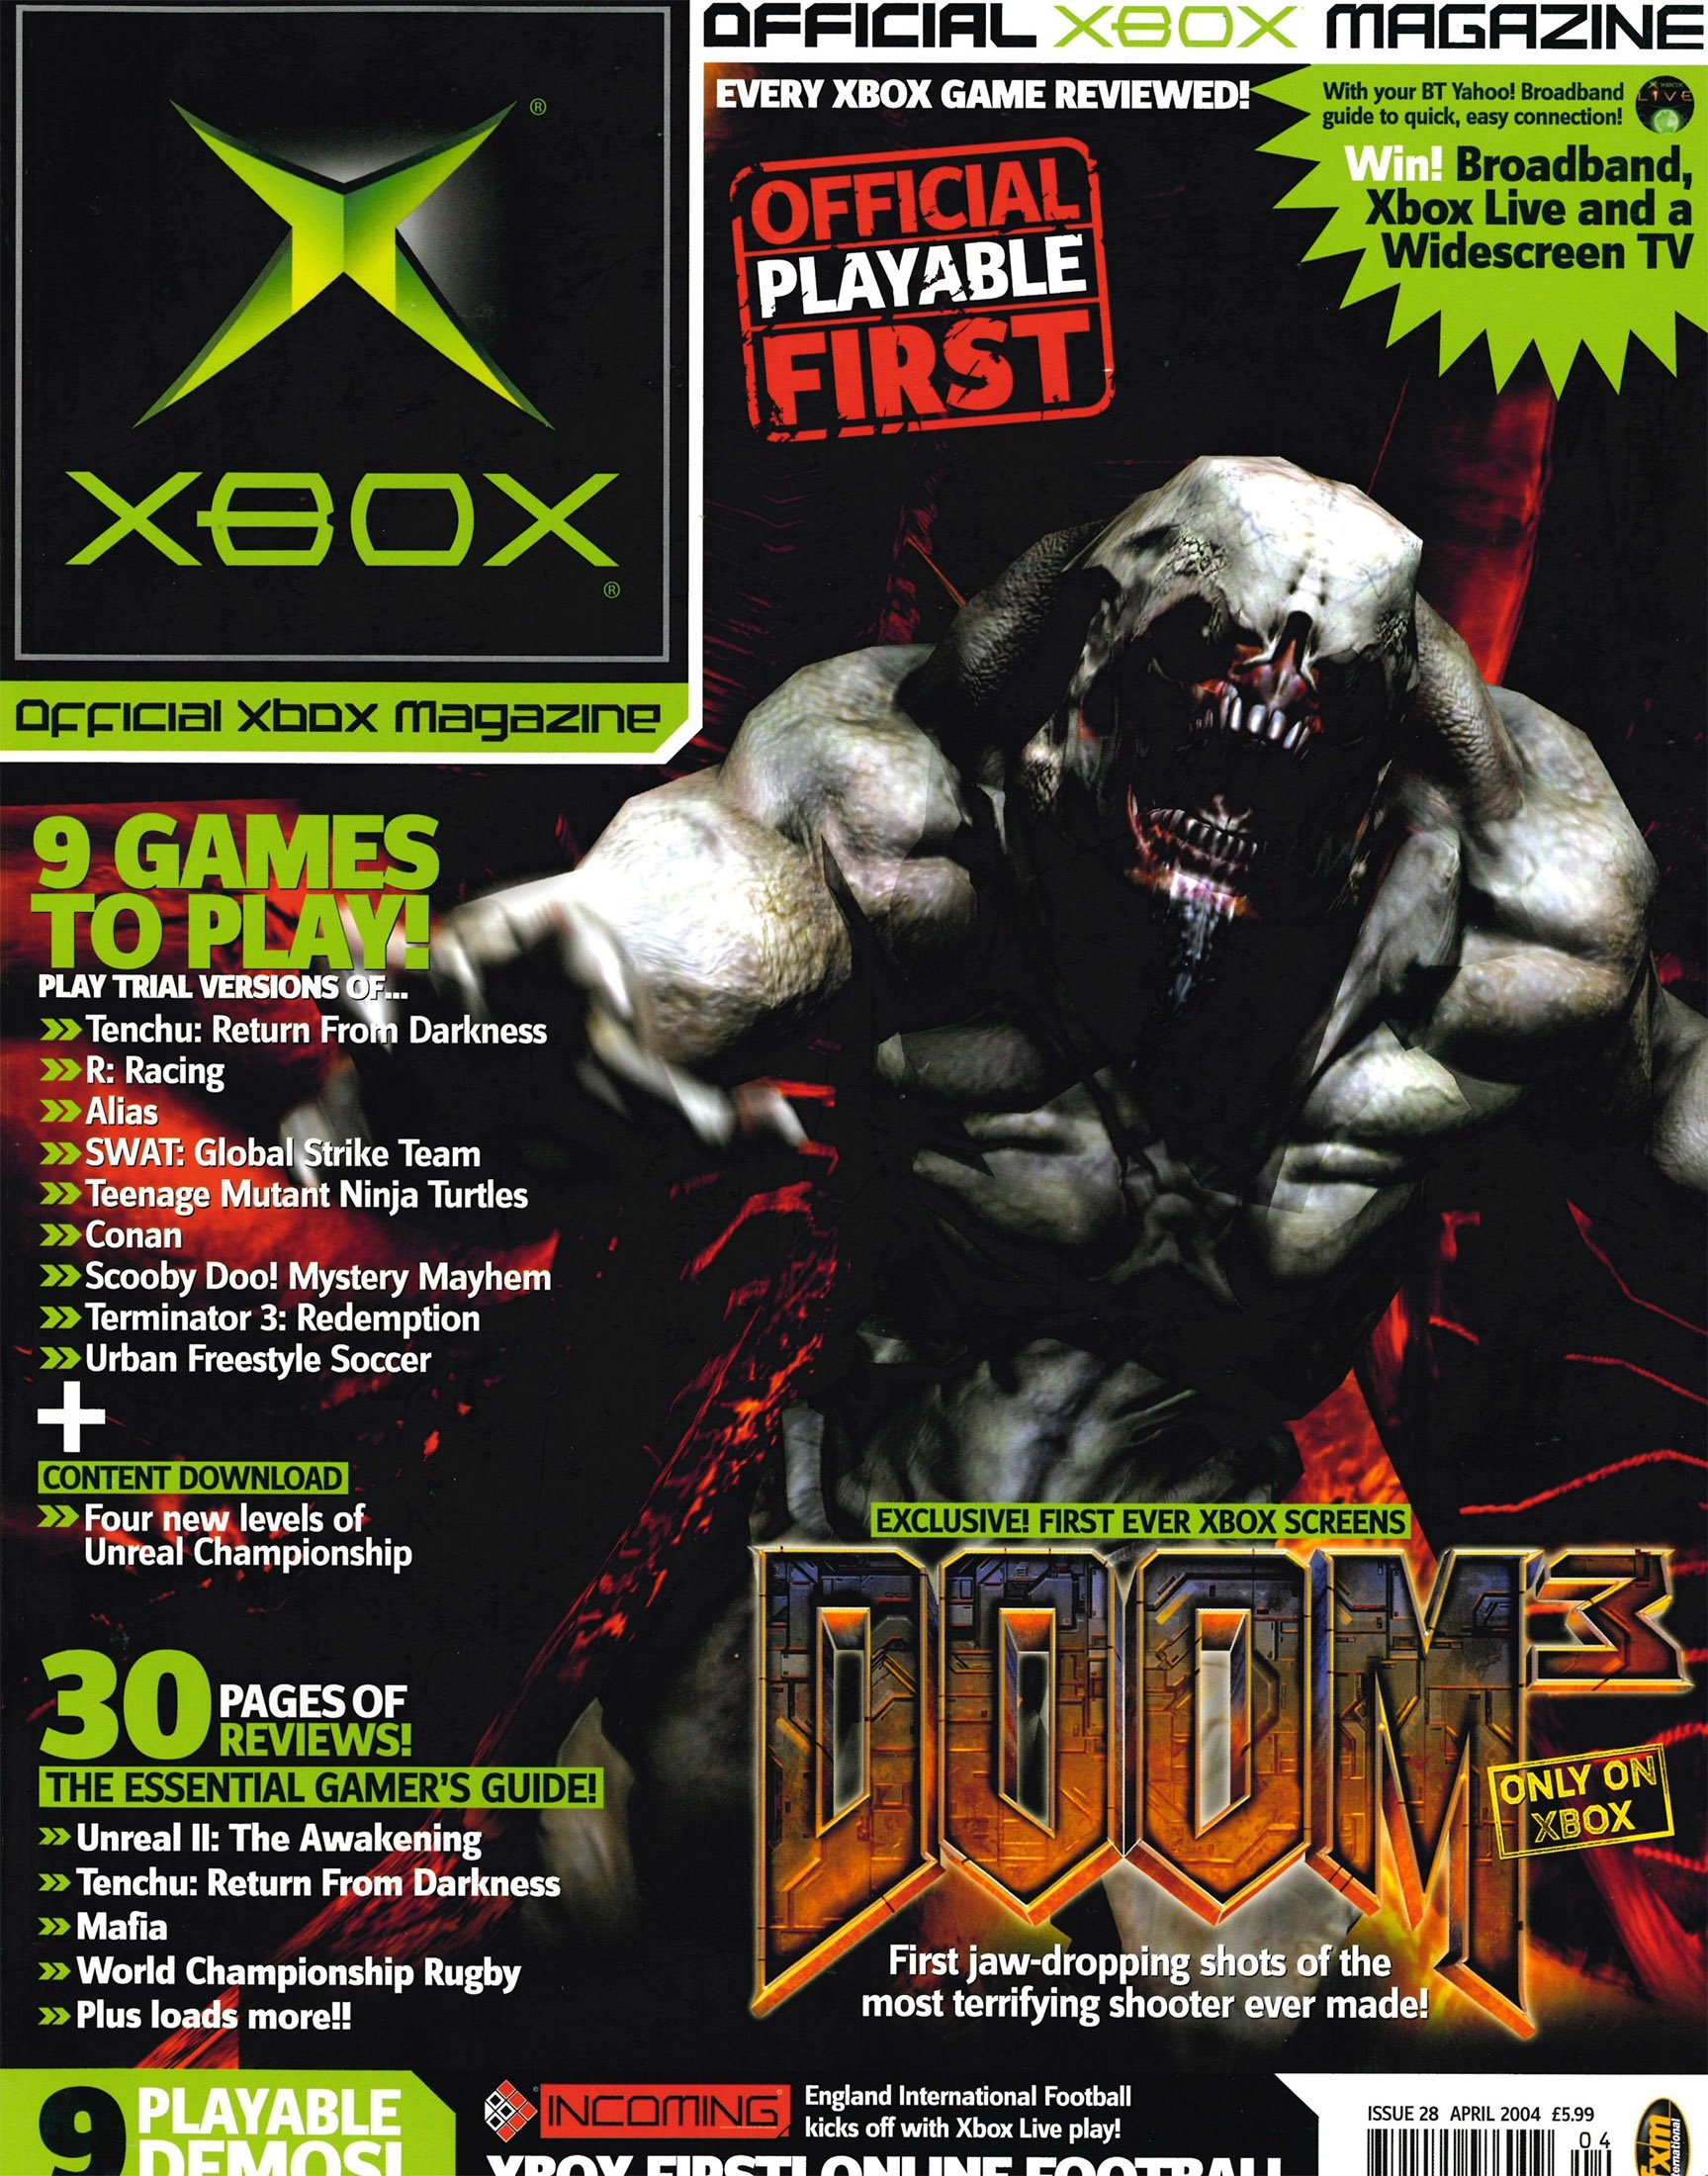 Official UK Xbox Magazine Issue 28 - April 2004